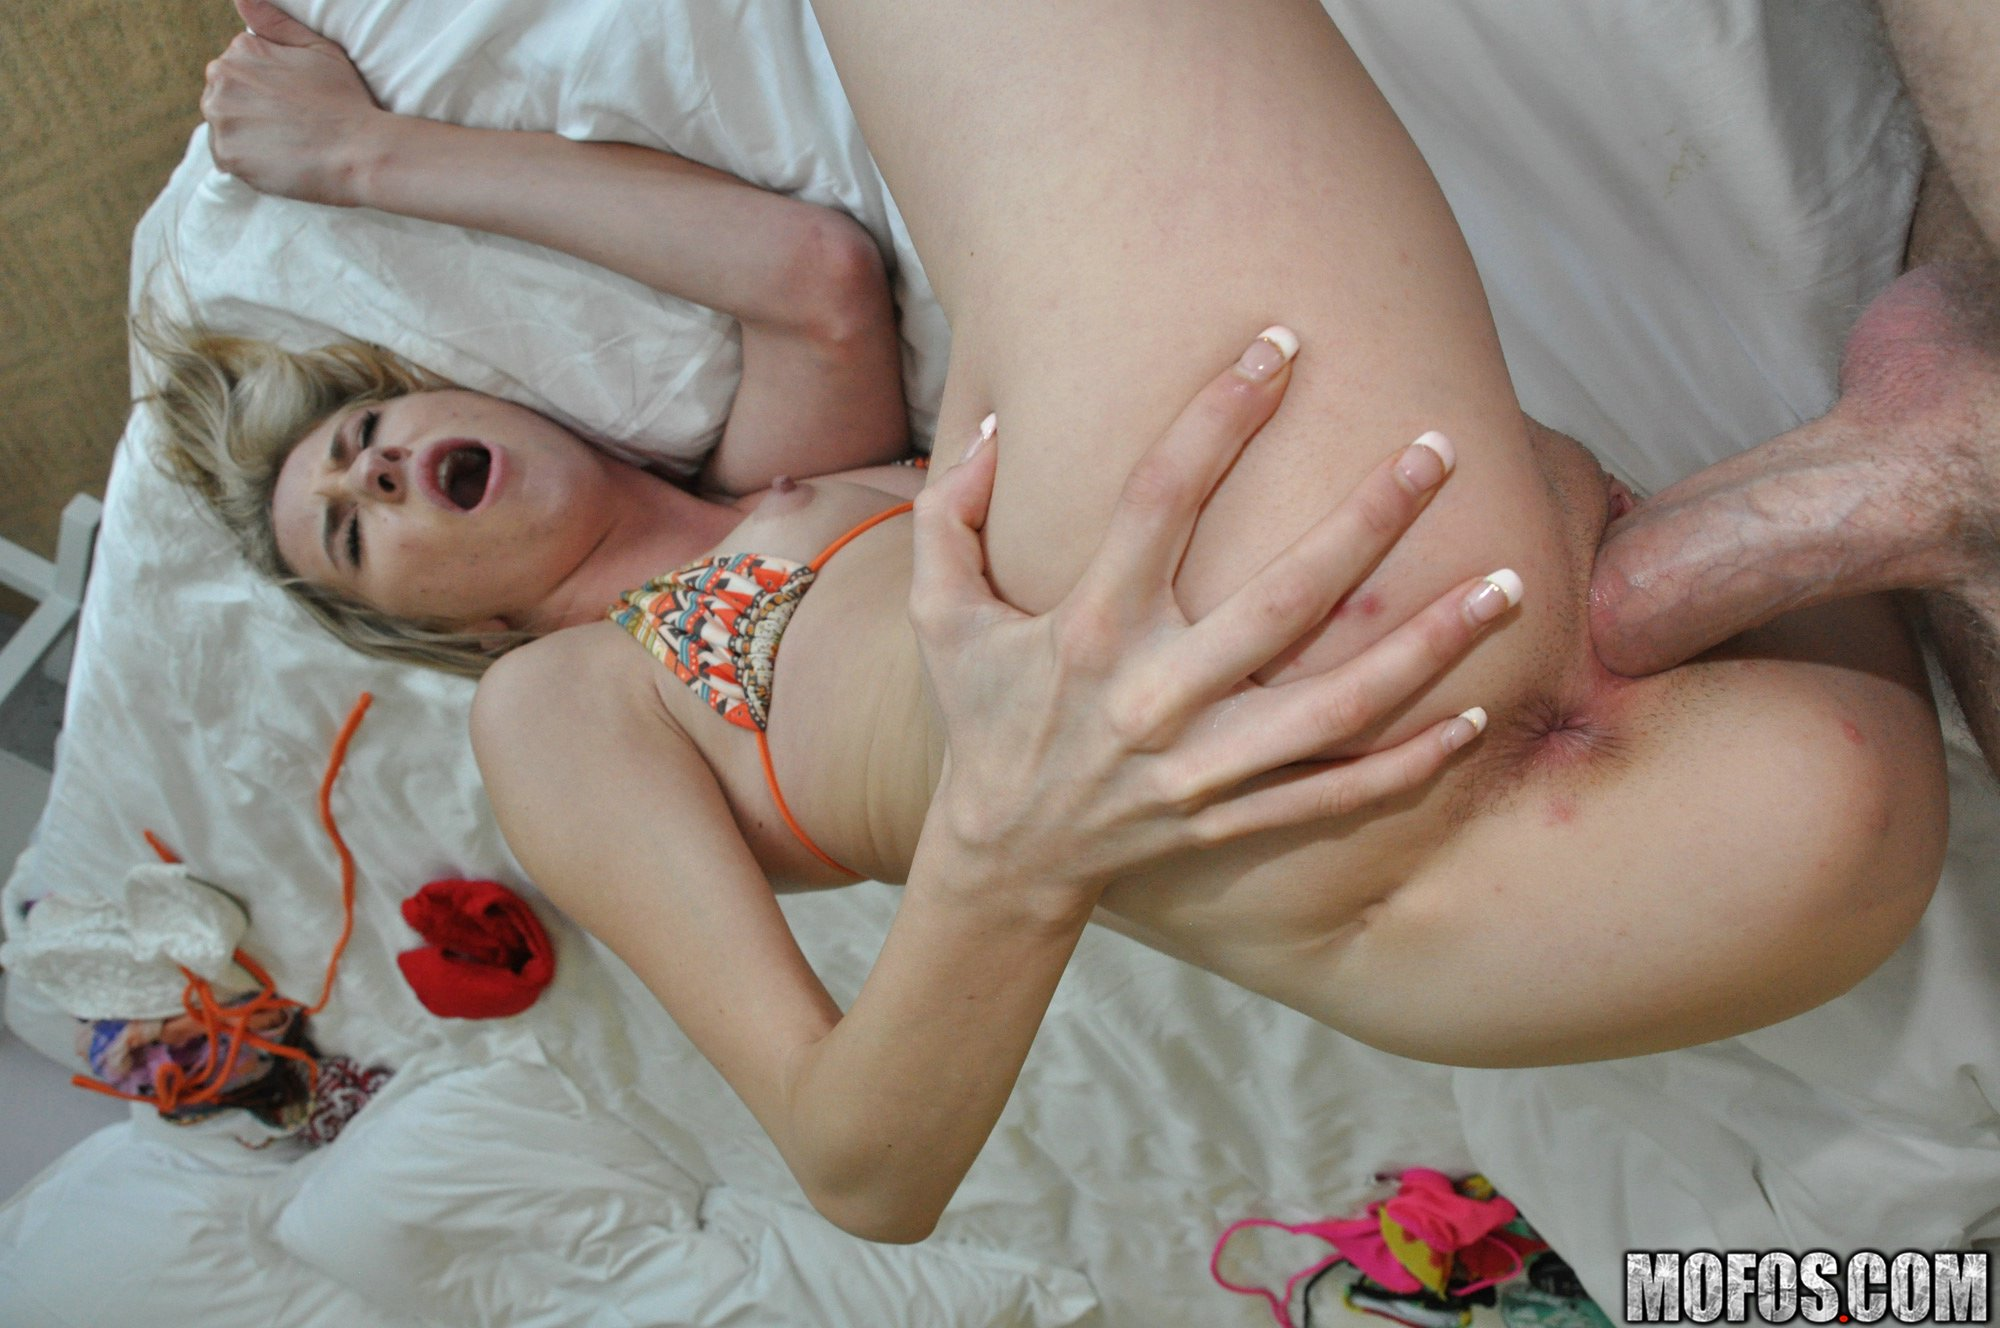 Lets try anal anal in the hotel room starring tristan ber - 1 9